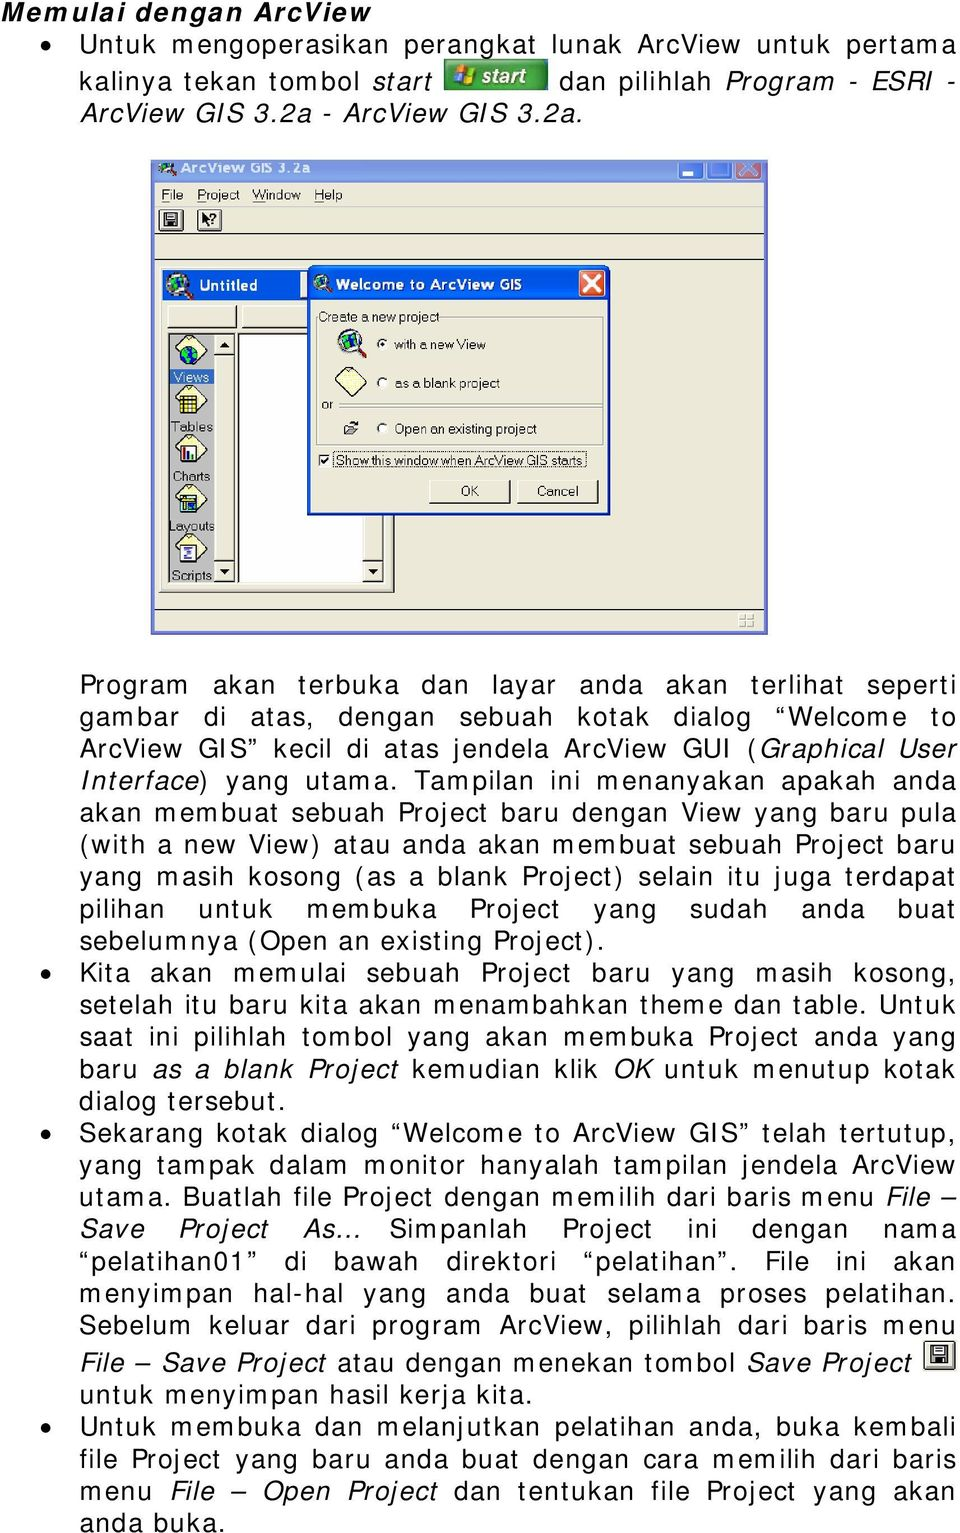 Program akan terbuka dan layar anda akan terlihat seperti gambar di atas, dengan sebuah kotak dialog Welcome to ArcView GIS kecil di atas jendela ArcView GUI (Graphical User Interface) yang utama.